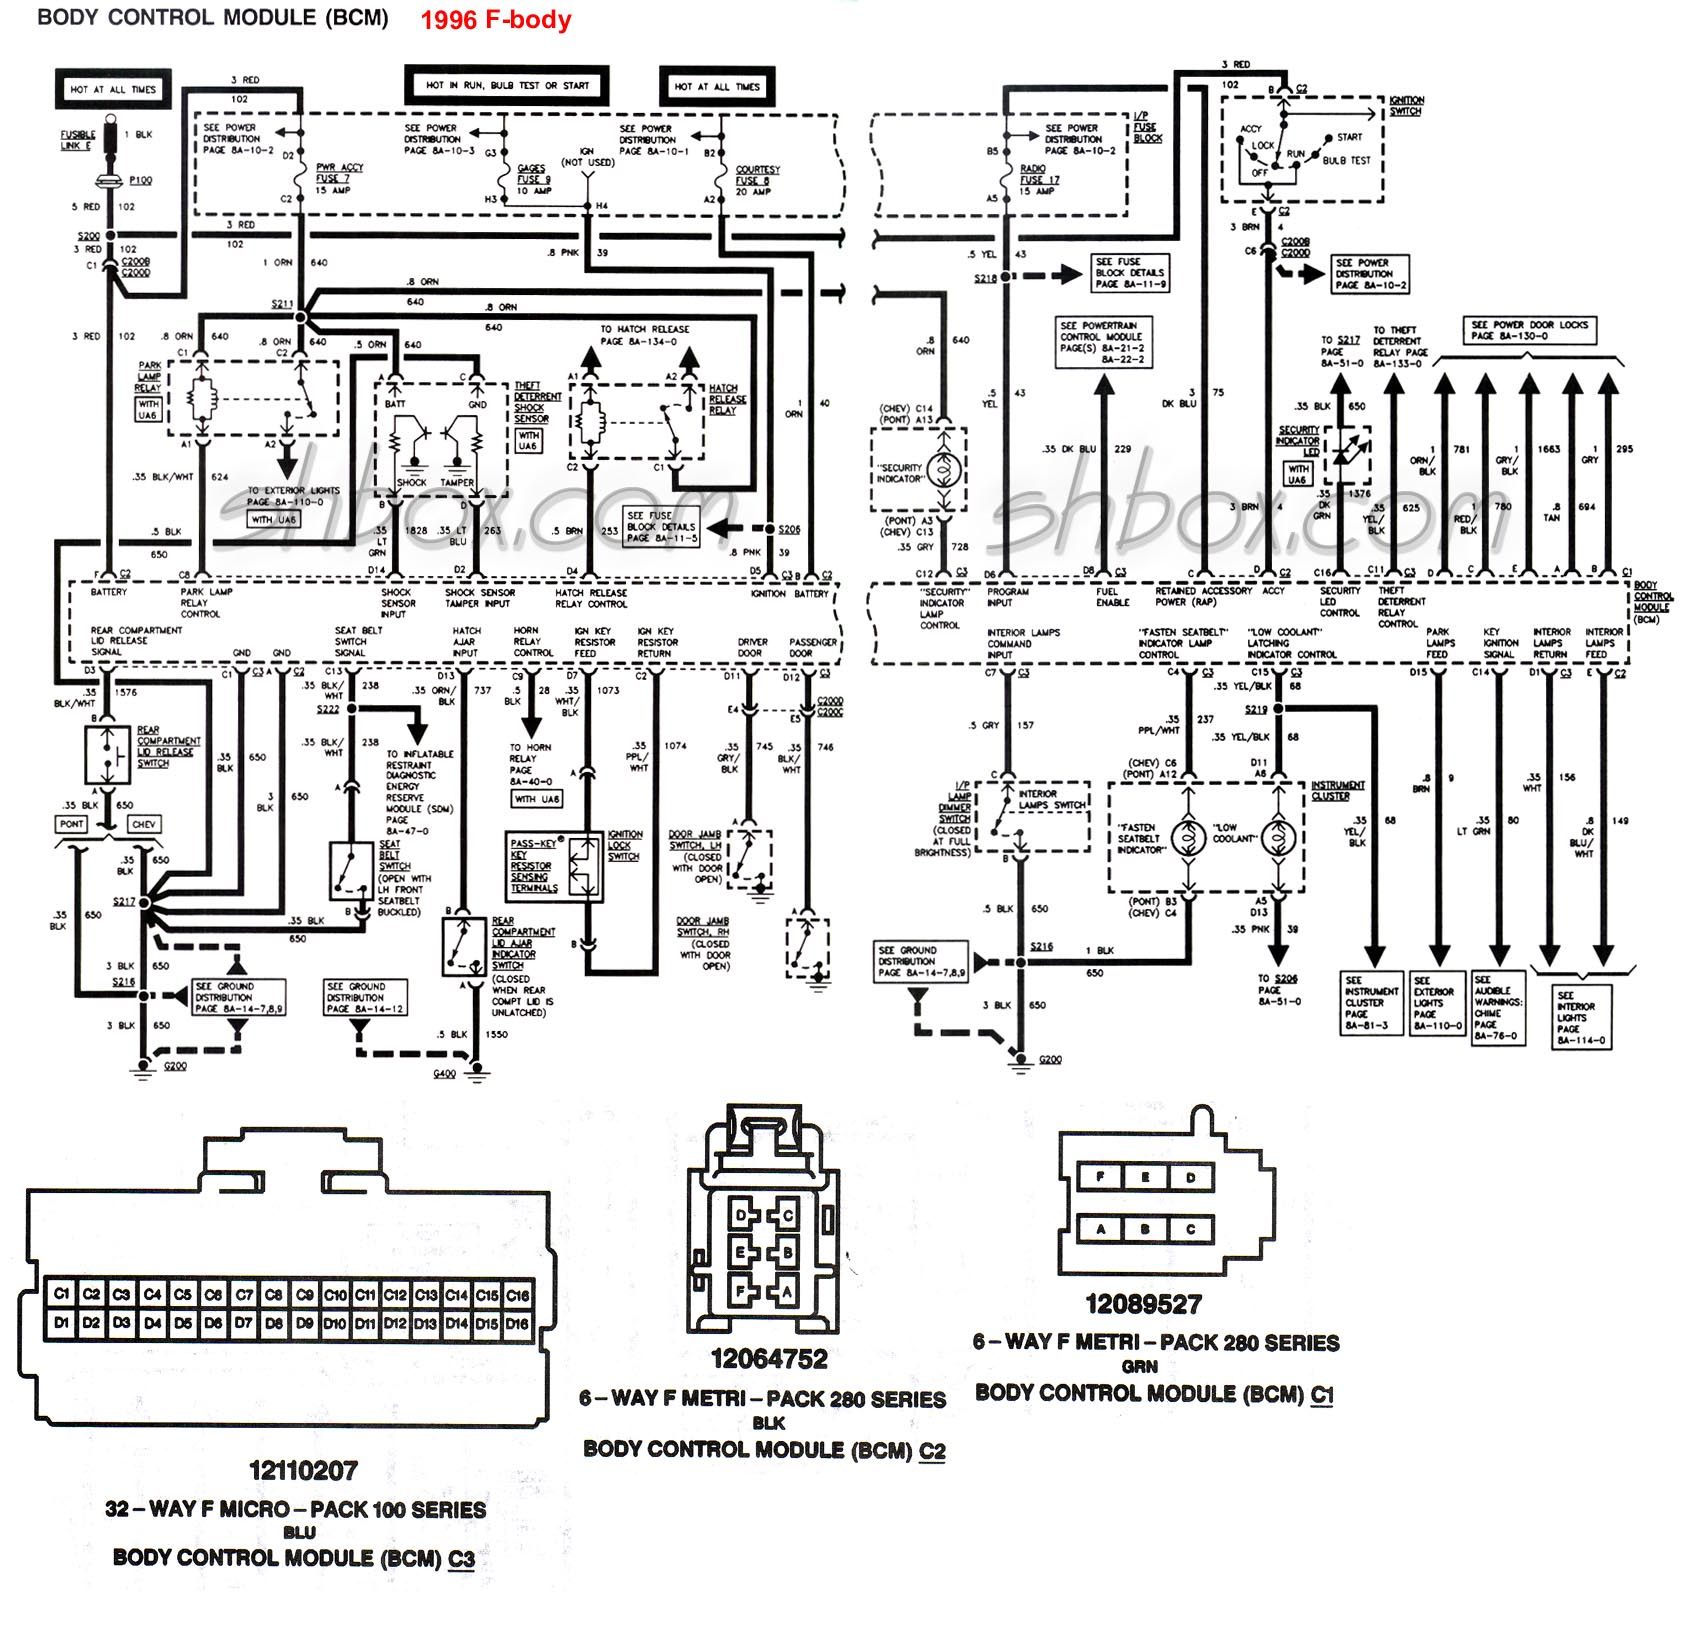 chevrolet silverado wiring diagram free pdf with Chevy Colorado Bcm Wiring Diagram on Cam Trailer Wiring Diagram moreover Wiring Diagram Gm 5 Prong Axle Actuator besides Wiring Diagram Html Pic2fly 1995 Chevy S10 as well Polaris Ranger 500 Wiring Diagram On Xp likewise Chevrolet Pickup C1500 Wiring Diagram And Electrical Schematics 1997.